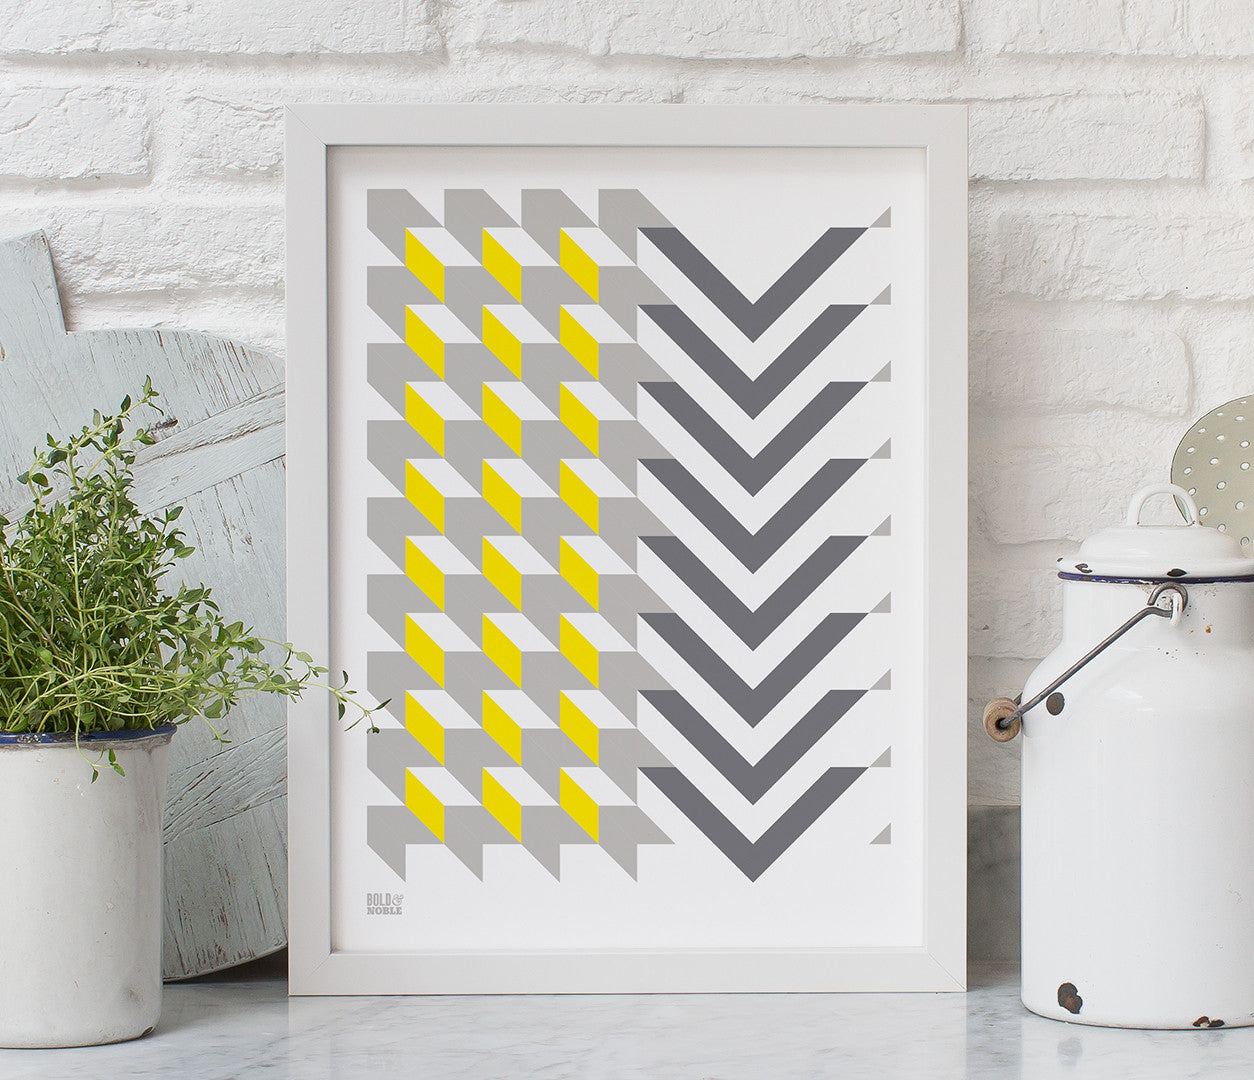 Geometric Chevron Art Print Design, Modern Print Designs for the Home